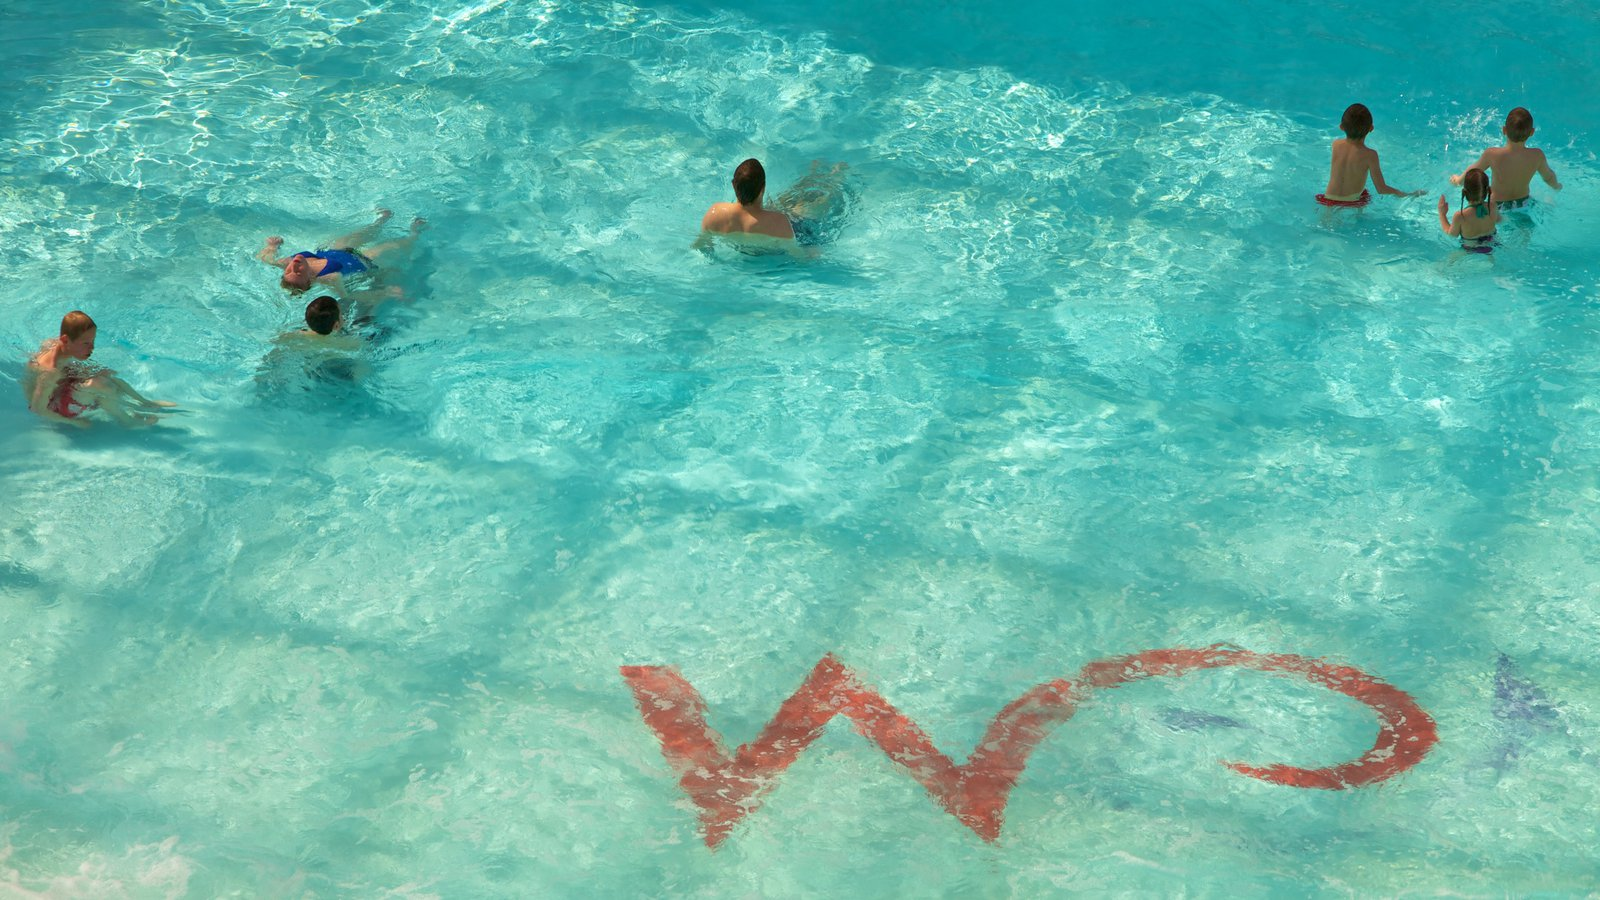 West Edmonton Mall showing swimming, rides and a pool